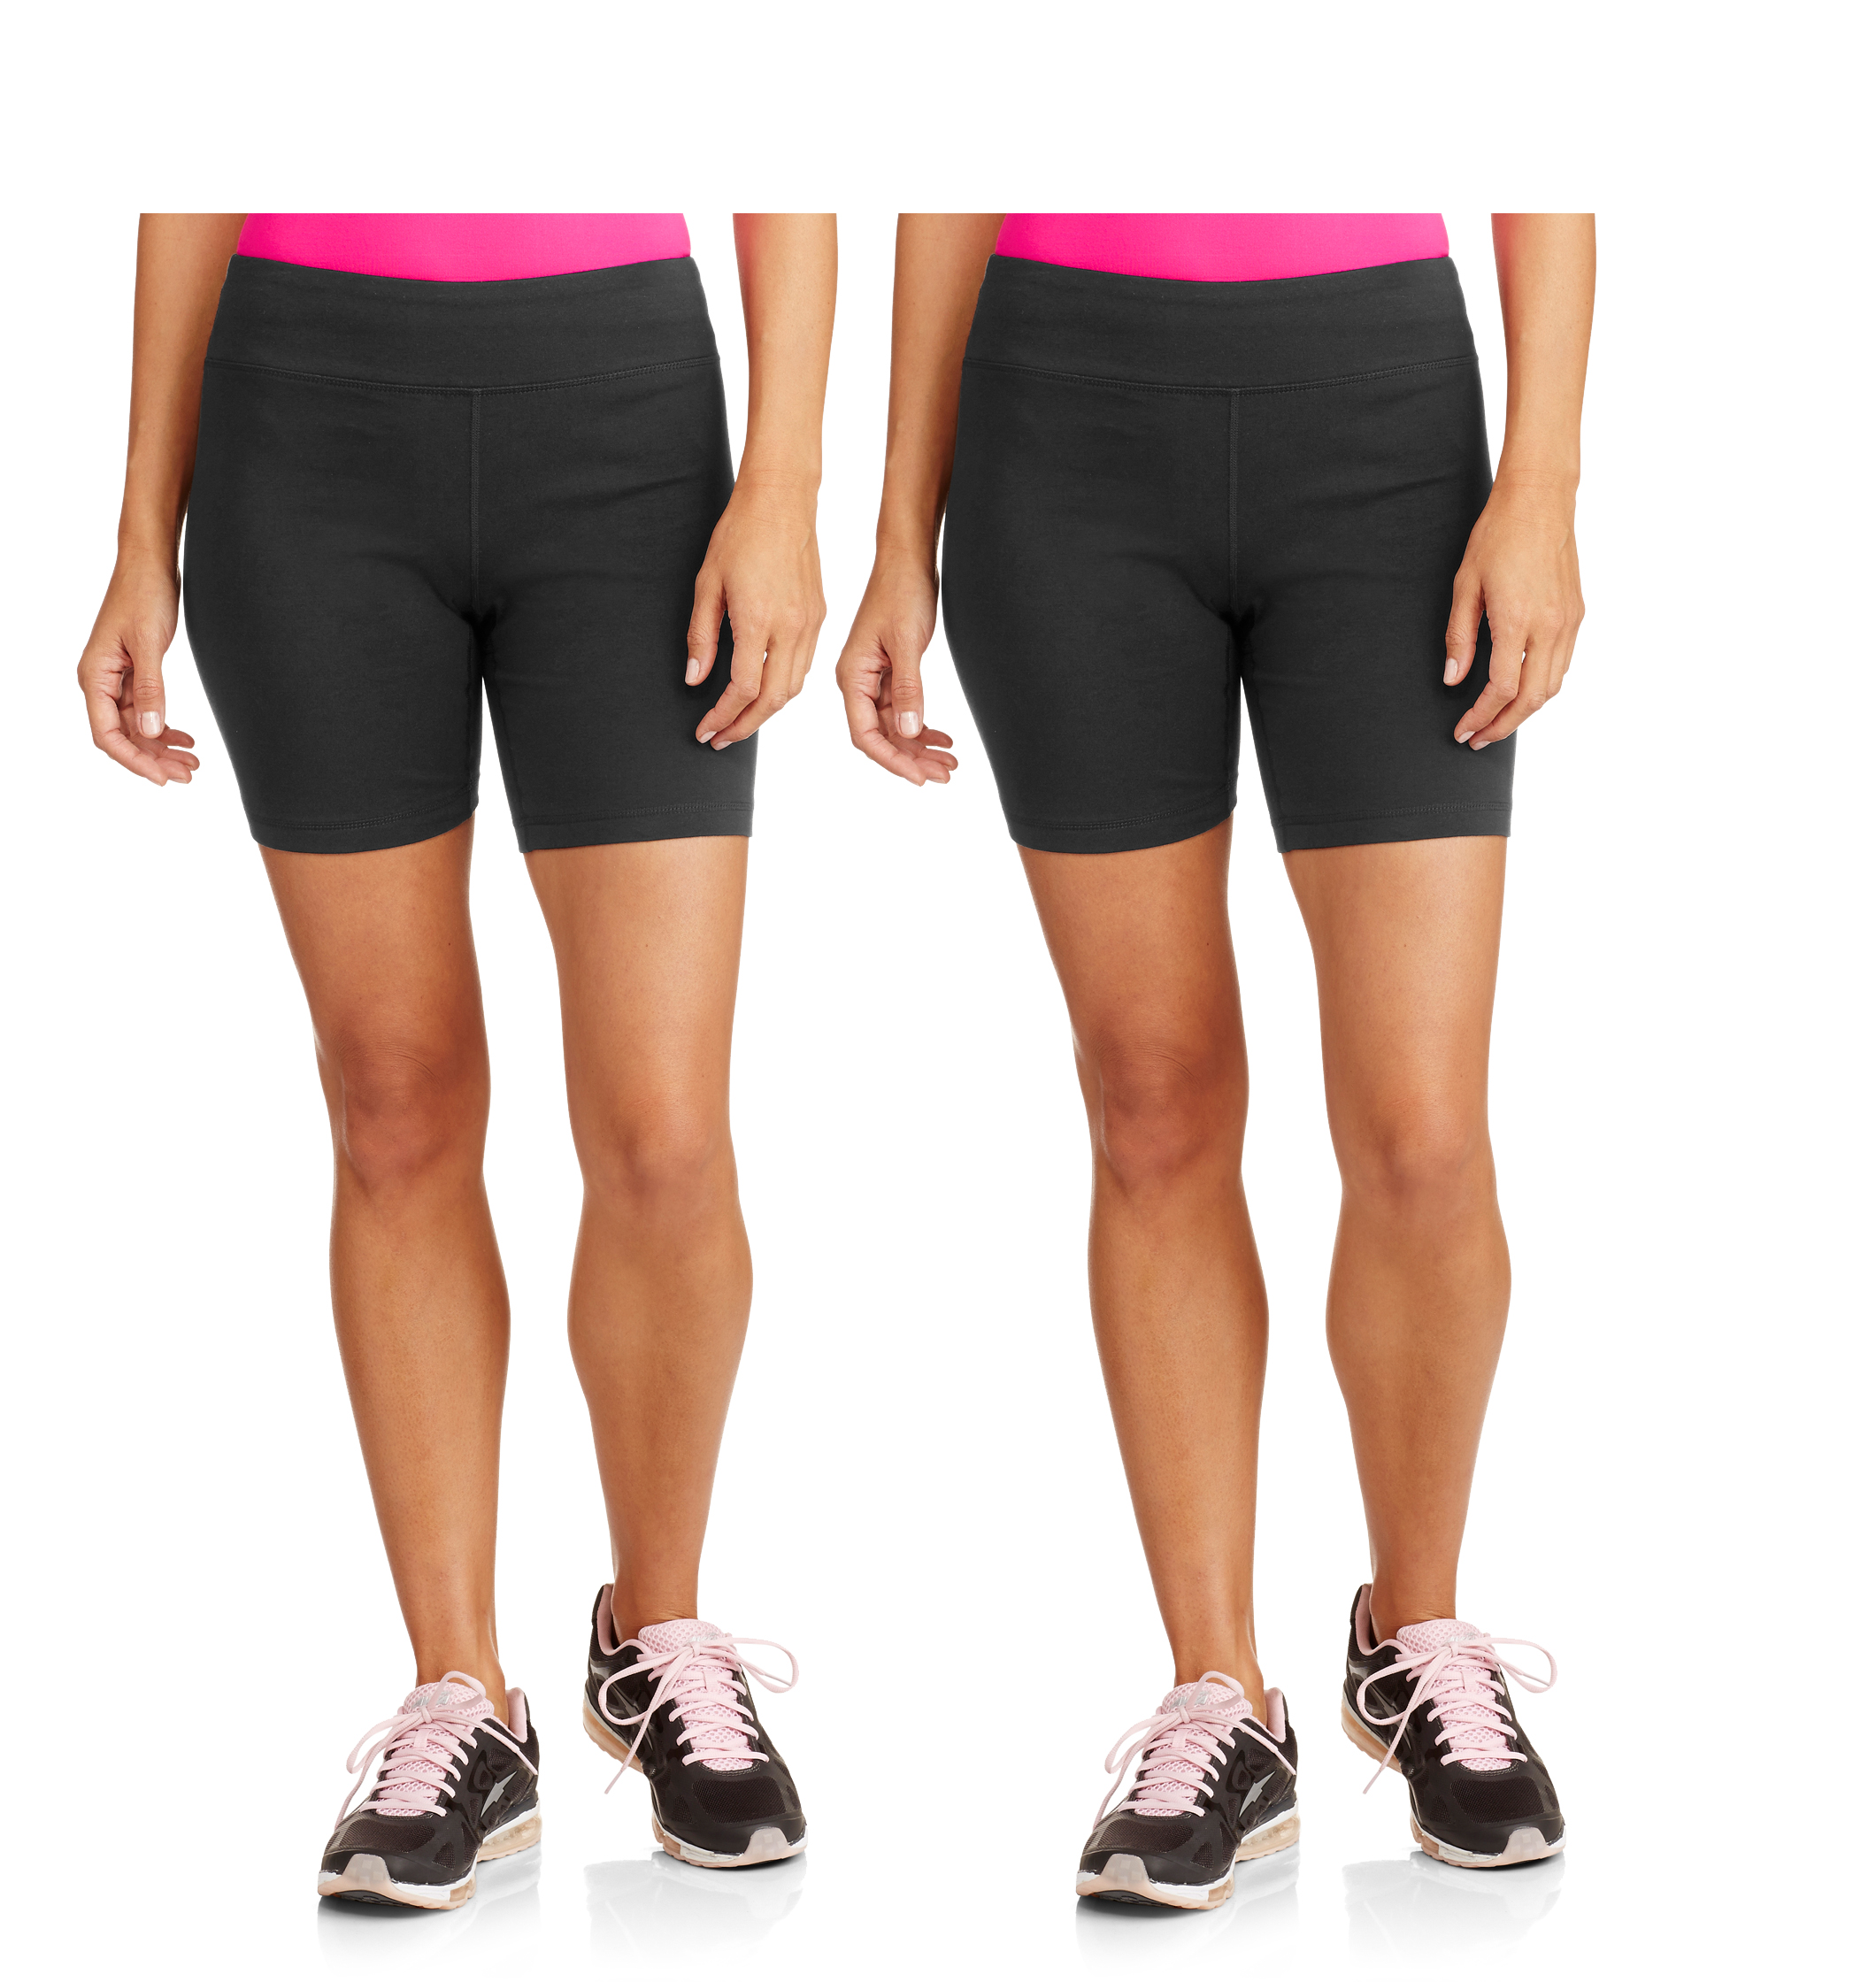 Danskin Now Women's Dri-More Core Bike Shorts, 2-Pack by